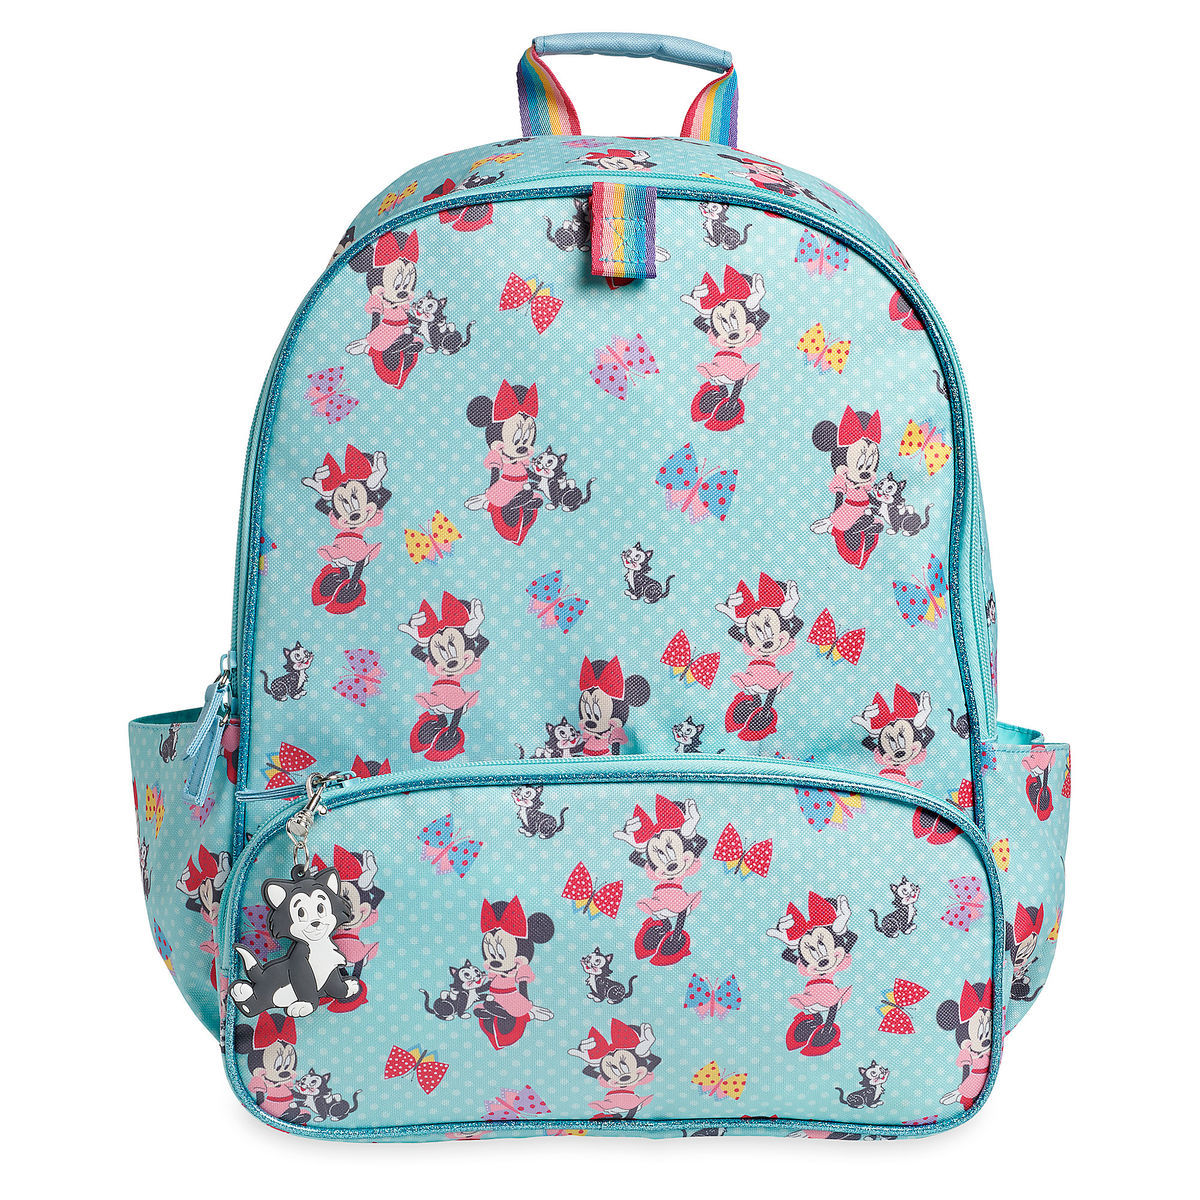 Product Image of Minnie Mouse Backpack for Kids - Personalizable   1 7b8414fa883d6